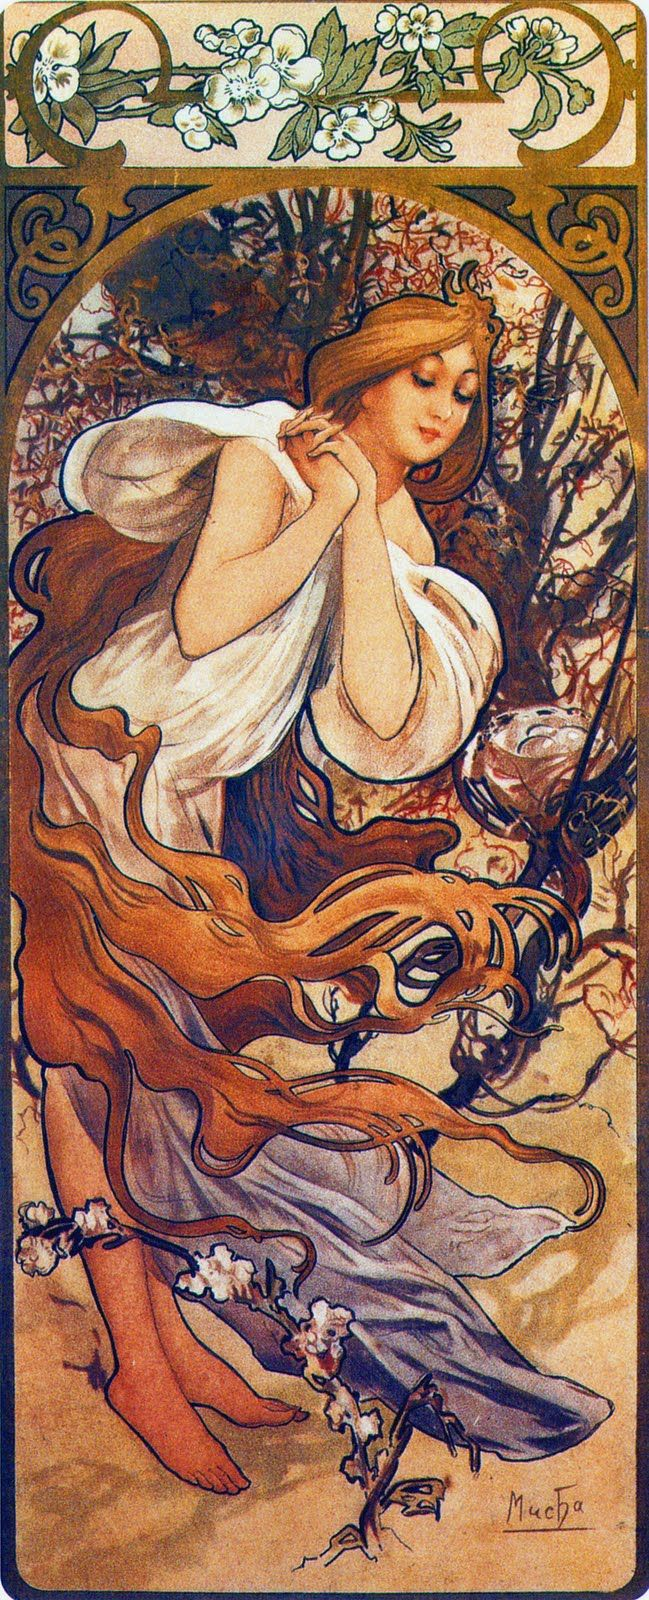 Alphonse Mucha (Czech, 1860 - 1939). The Seasons: Spring, 1897. Color Lithograph, 73 x 32 cm.